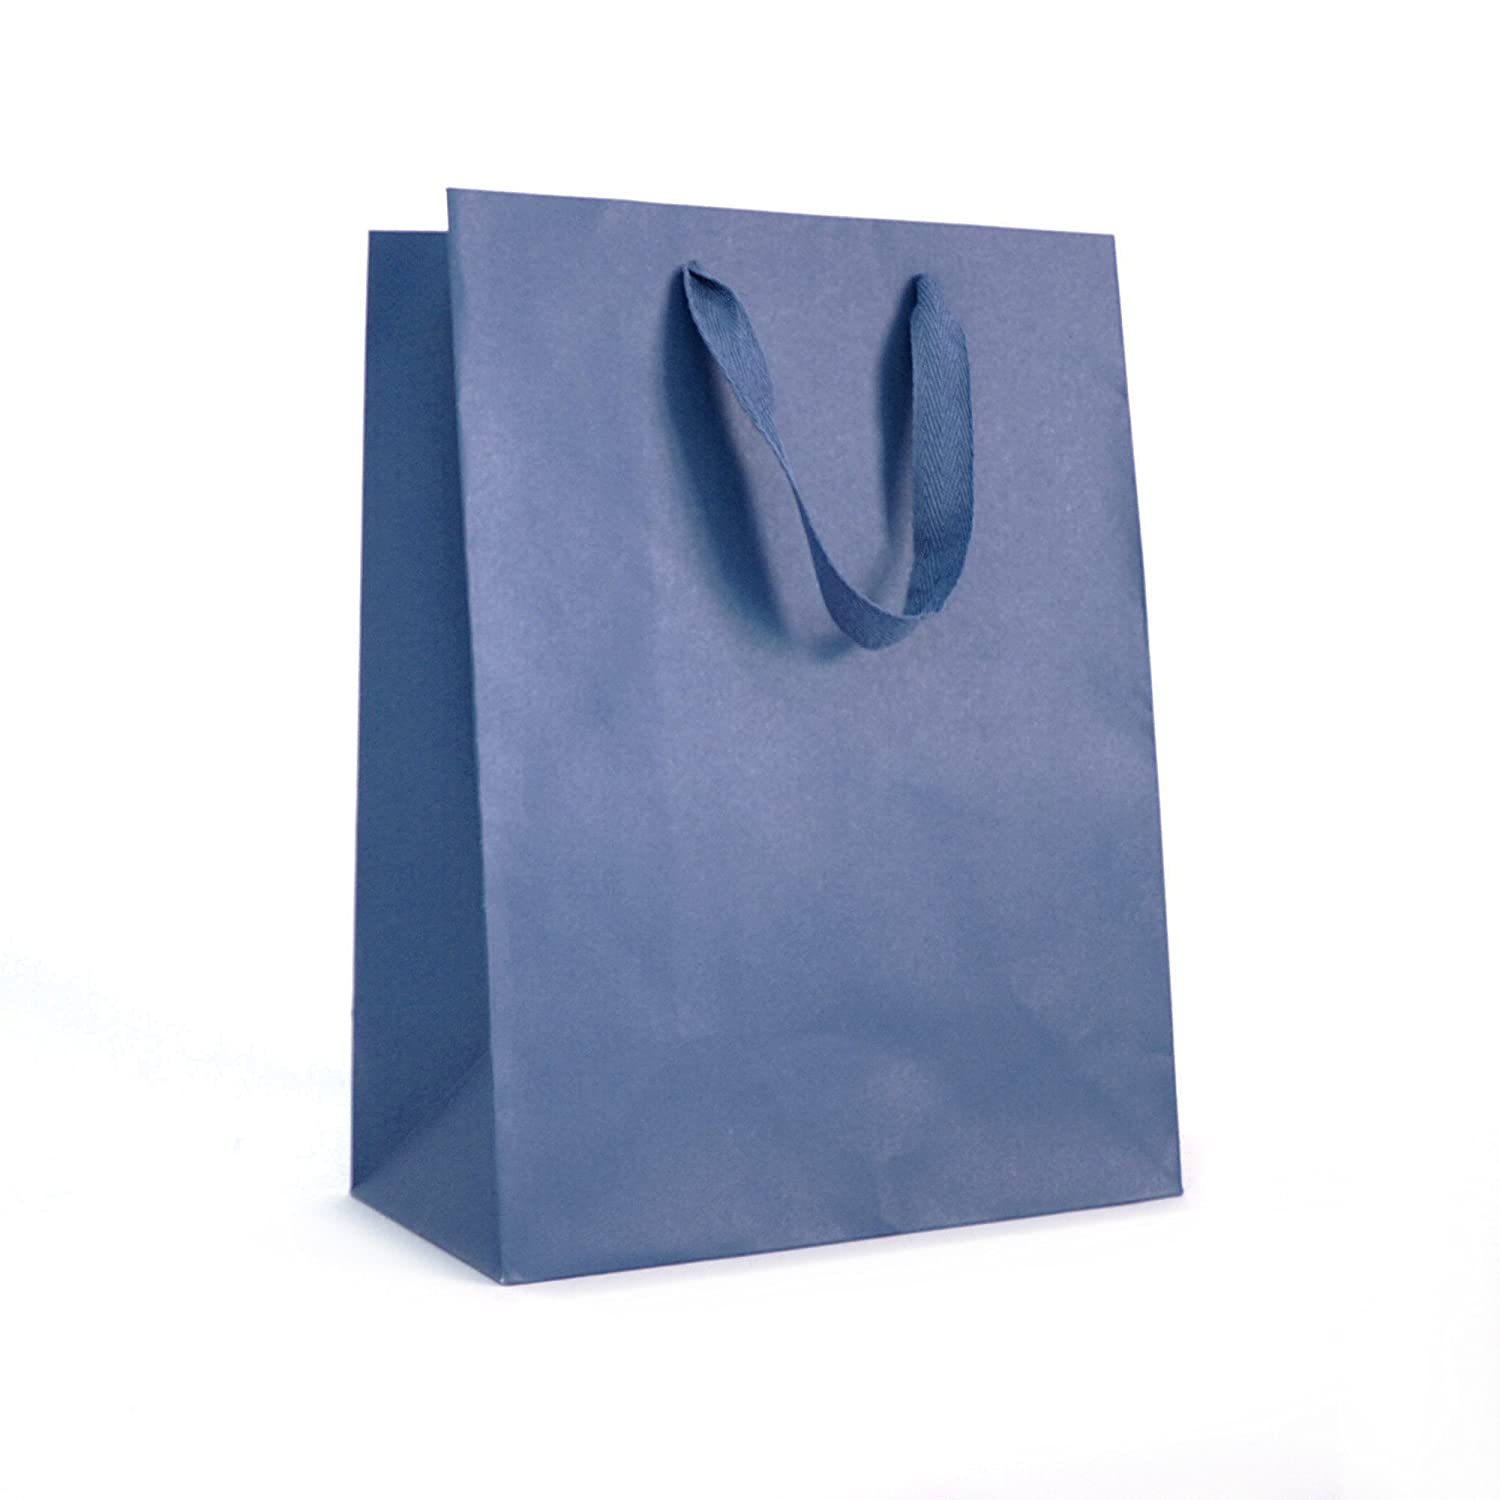 Manhattan Tote Paper Shopping Bags, 8x4x10, Broadway Black, 25/Pack, Merchandise, Retail, Party, Boutique, Gift, Bulk, Reinforced Gusset 8x4x10 White Label